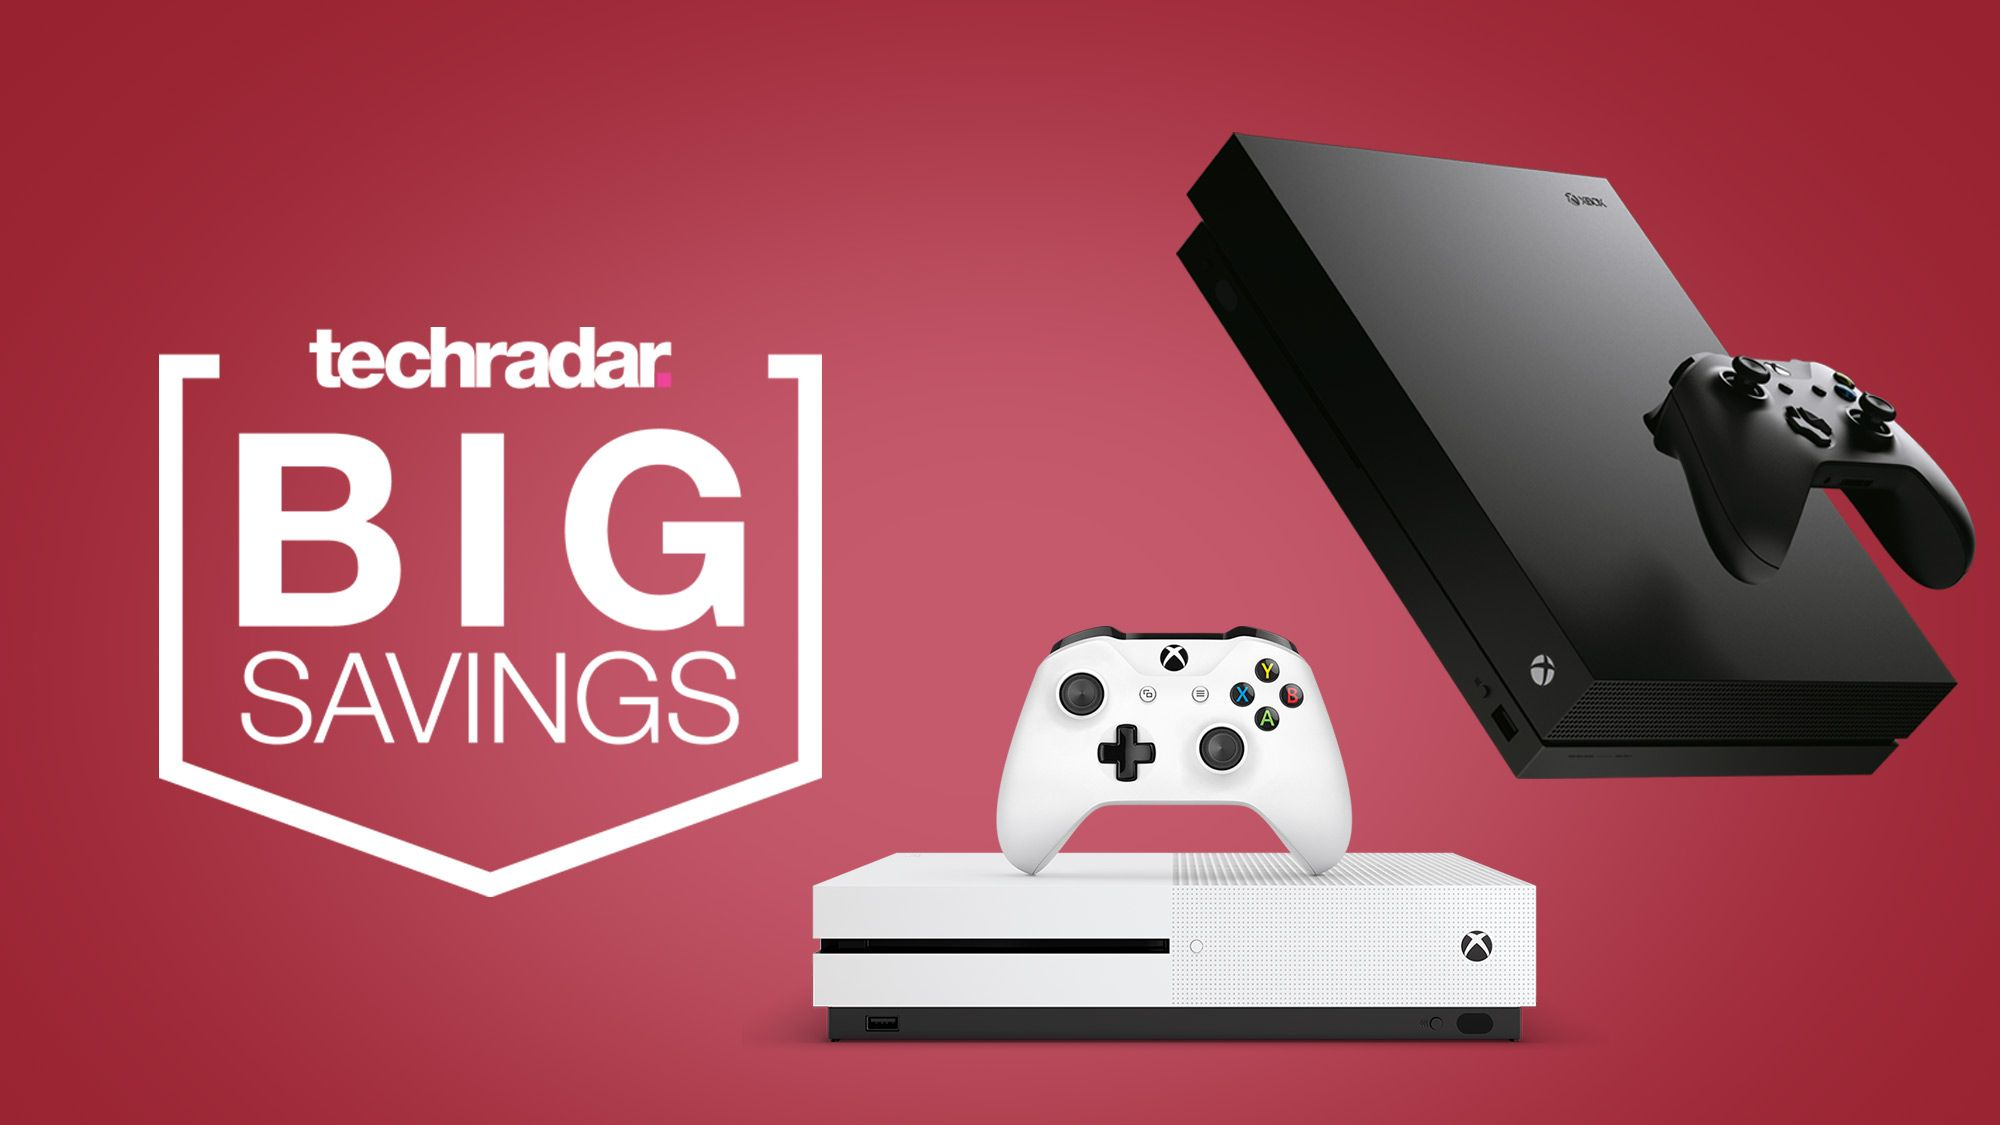 Xbox One Bundle Deals Offer Black Friday Prices With Discounts Across All Models Xbox One Black Friday Xbox One S 1tb